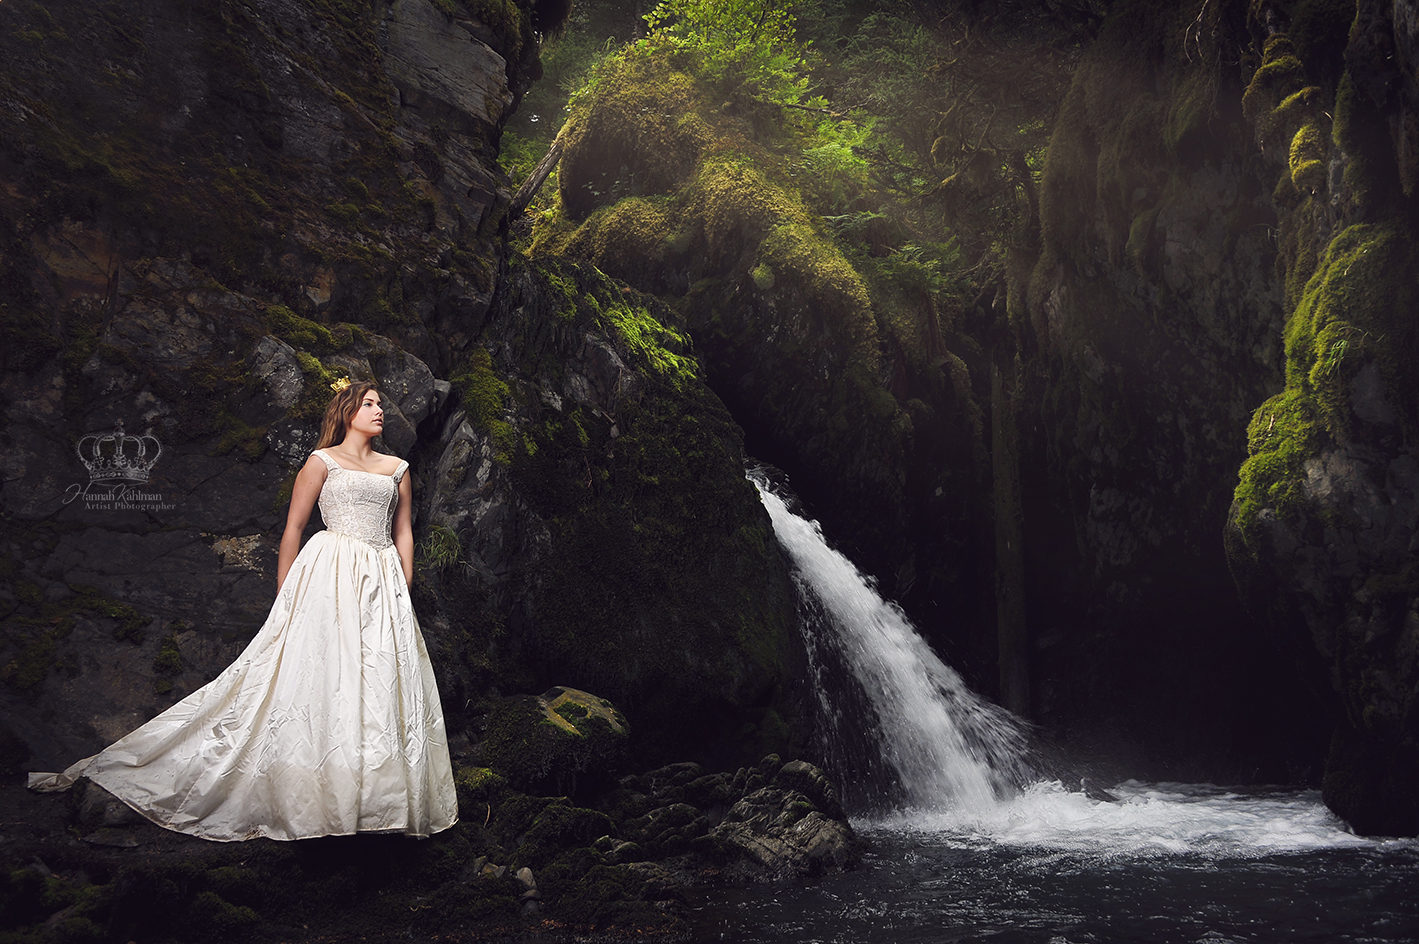 Fantasy_photo_outdoors_by_waterfall_woma